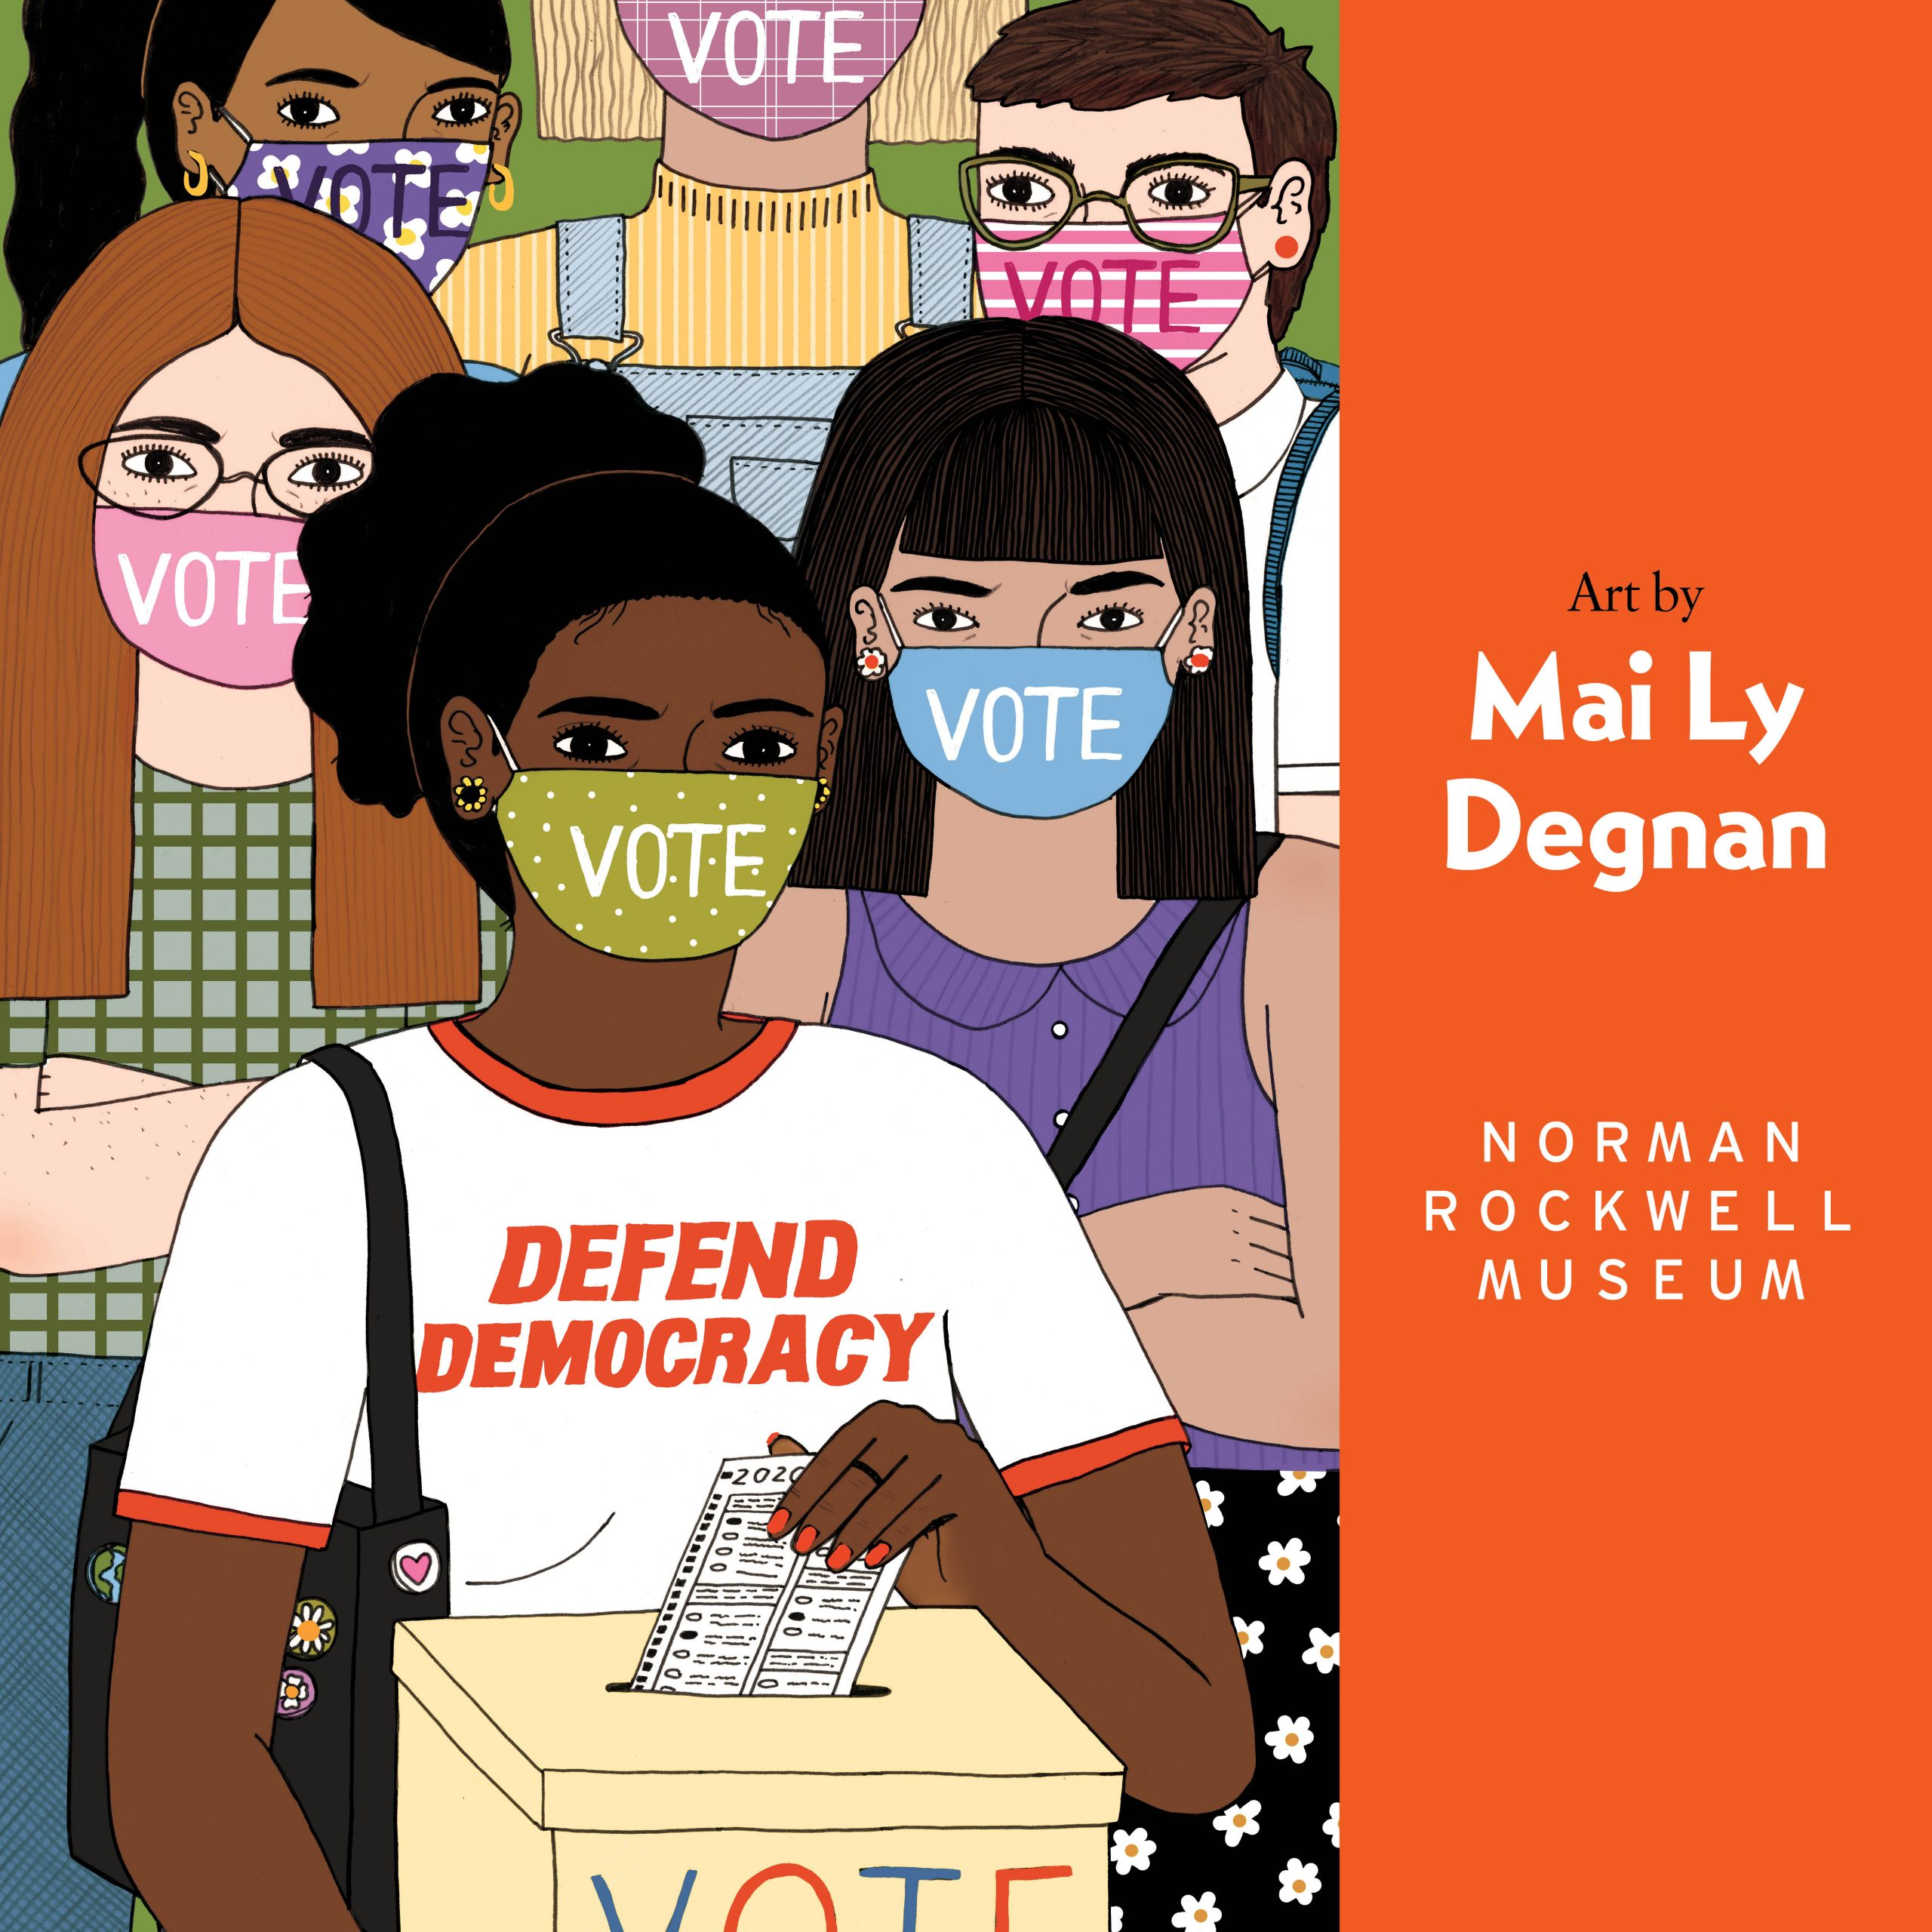 Mai Ly Degnan: Defend Democracy